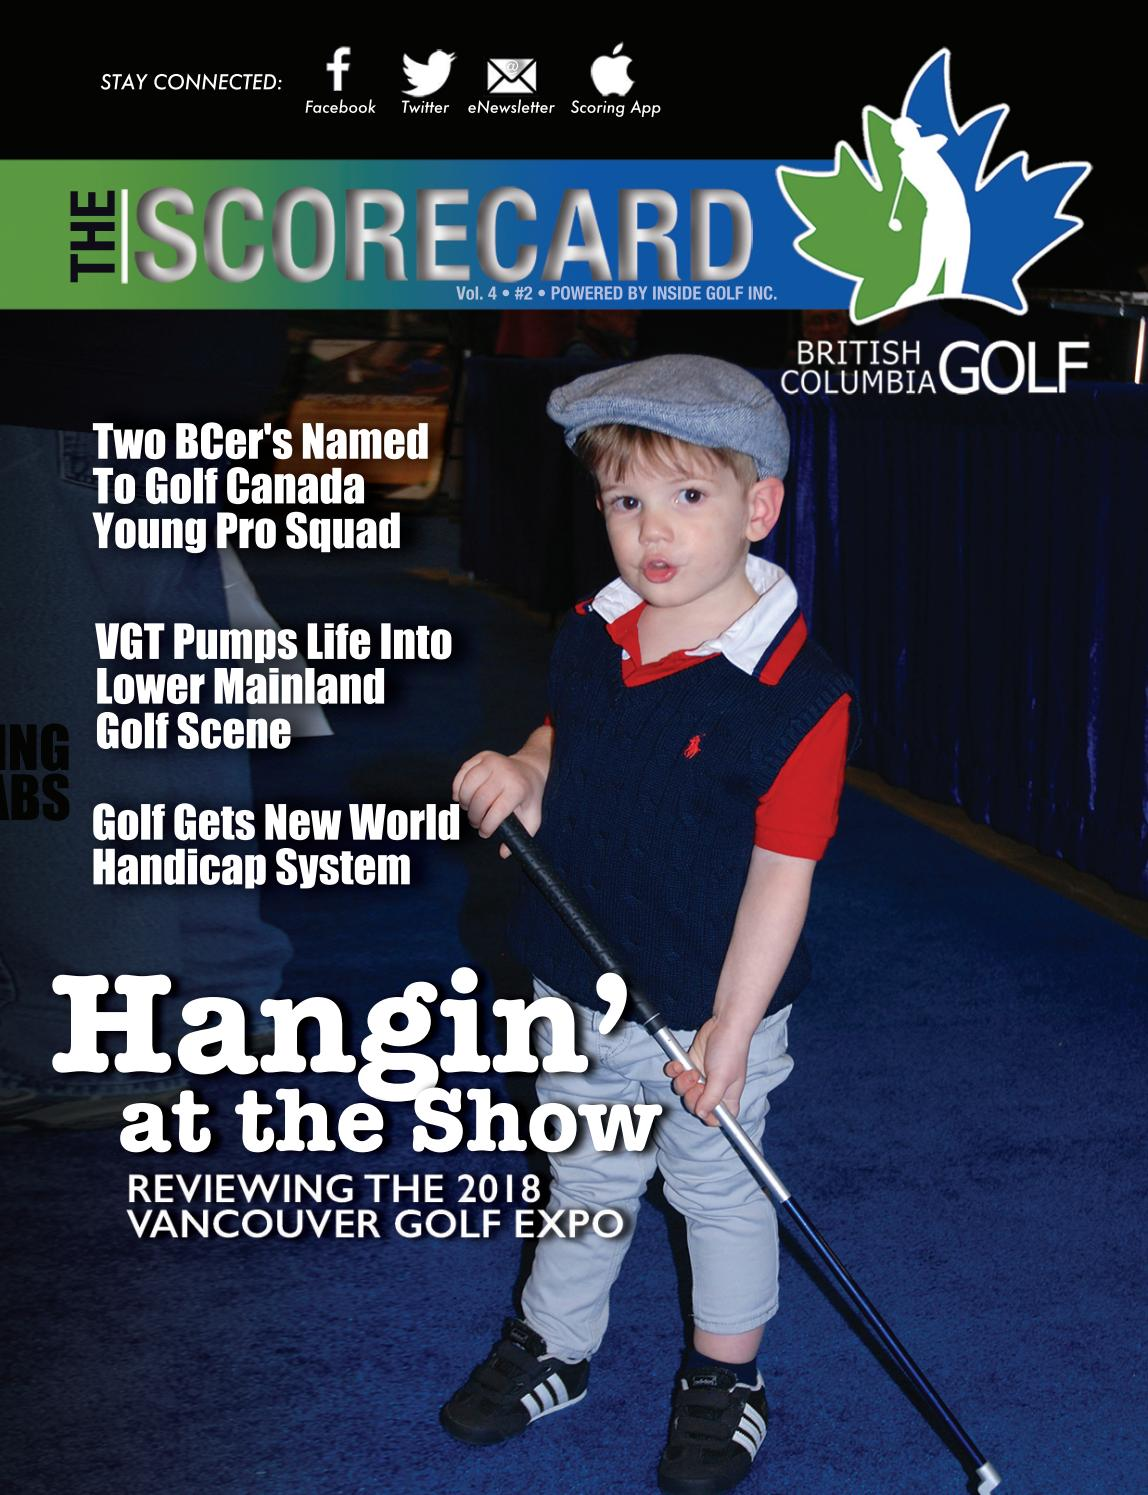 British Columbia Golf - The Scorecard Magazine Vol. 4 Issue 2 by Inside Golf  Inc. - issuu 4c00bea7e238